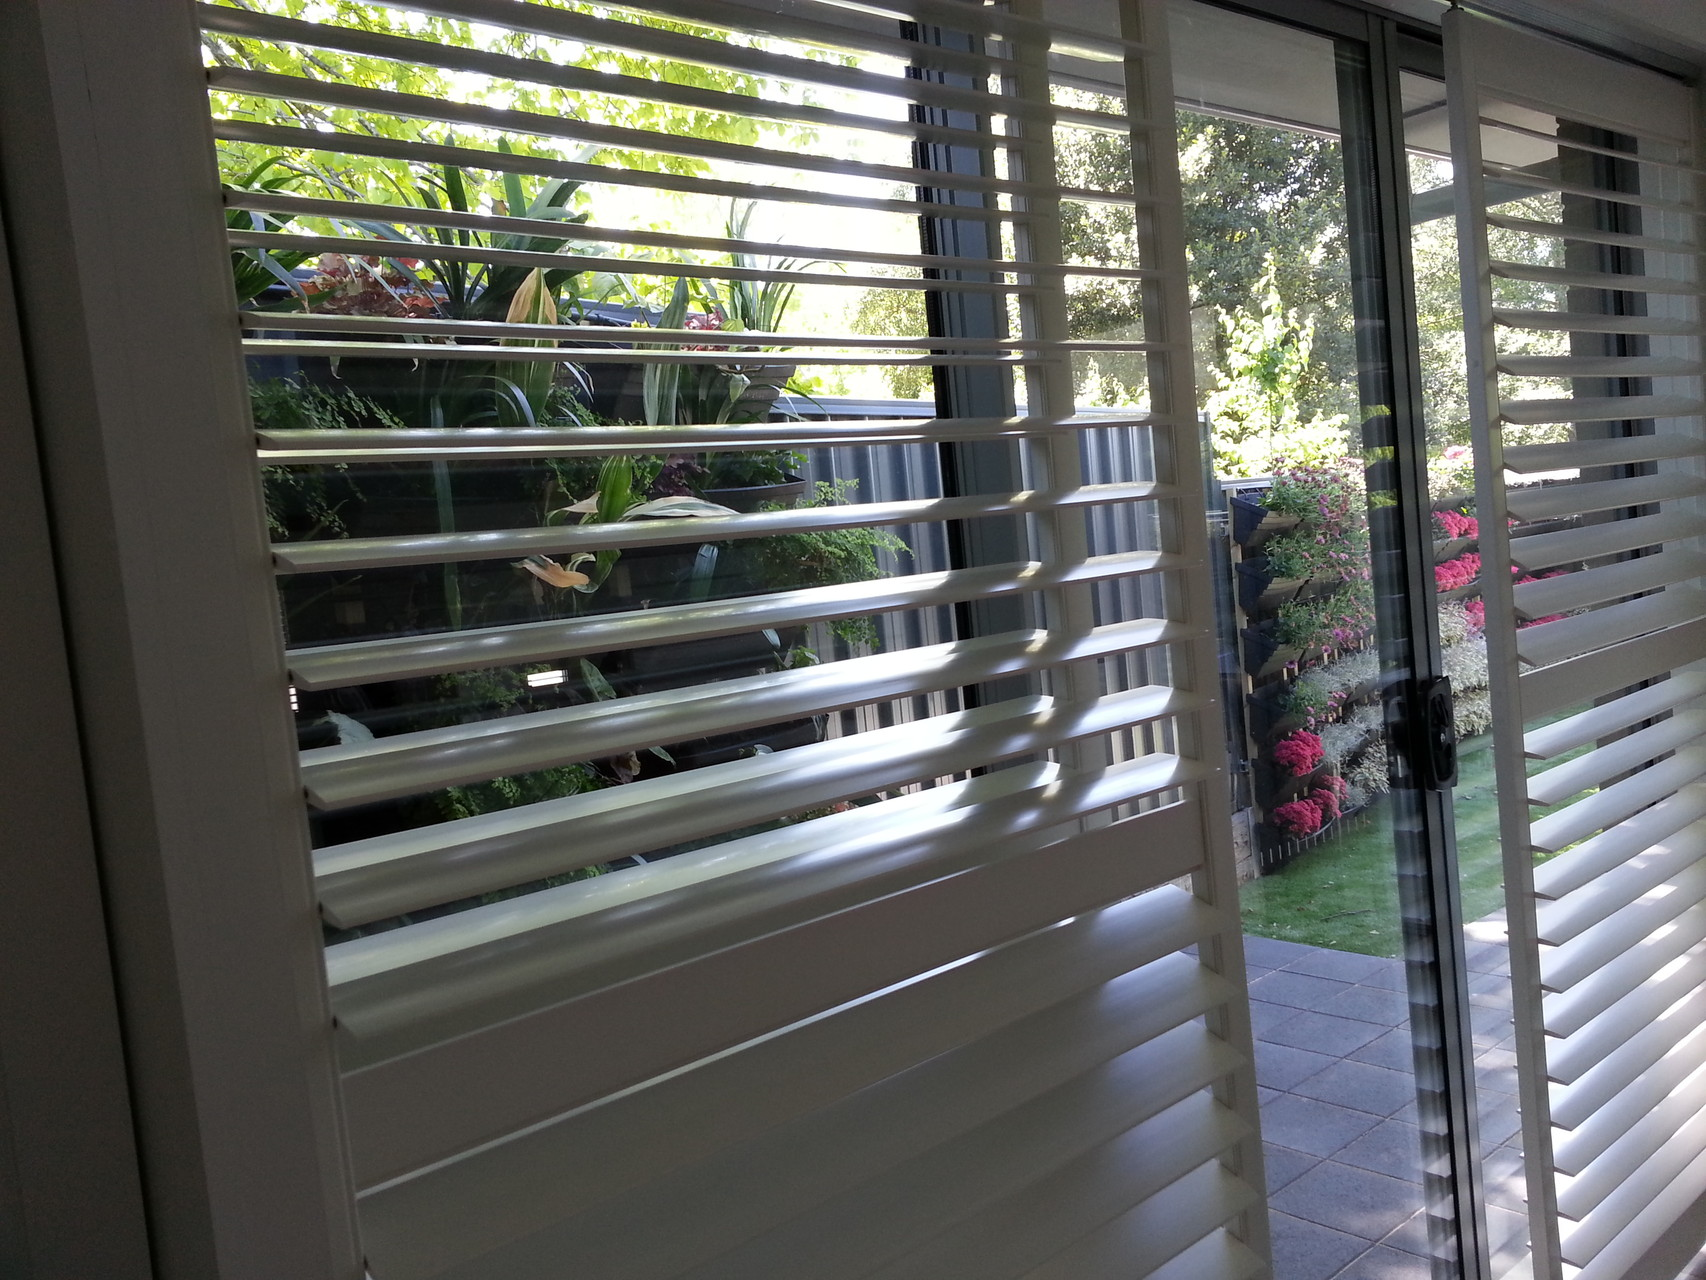 Shutters in Sliding door